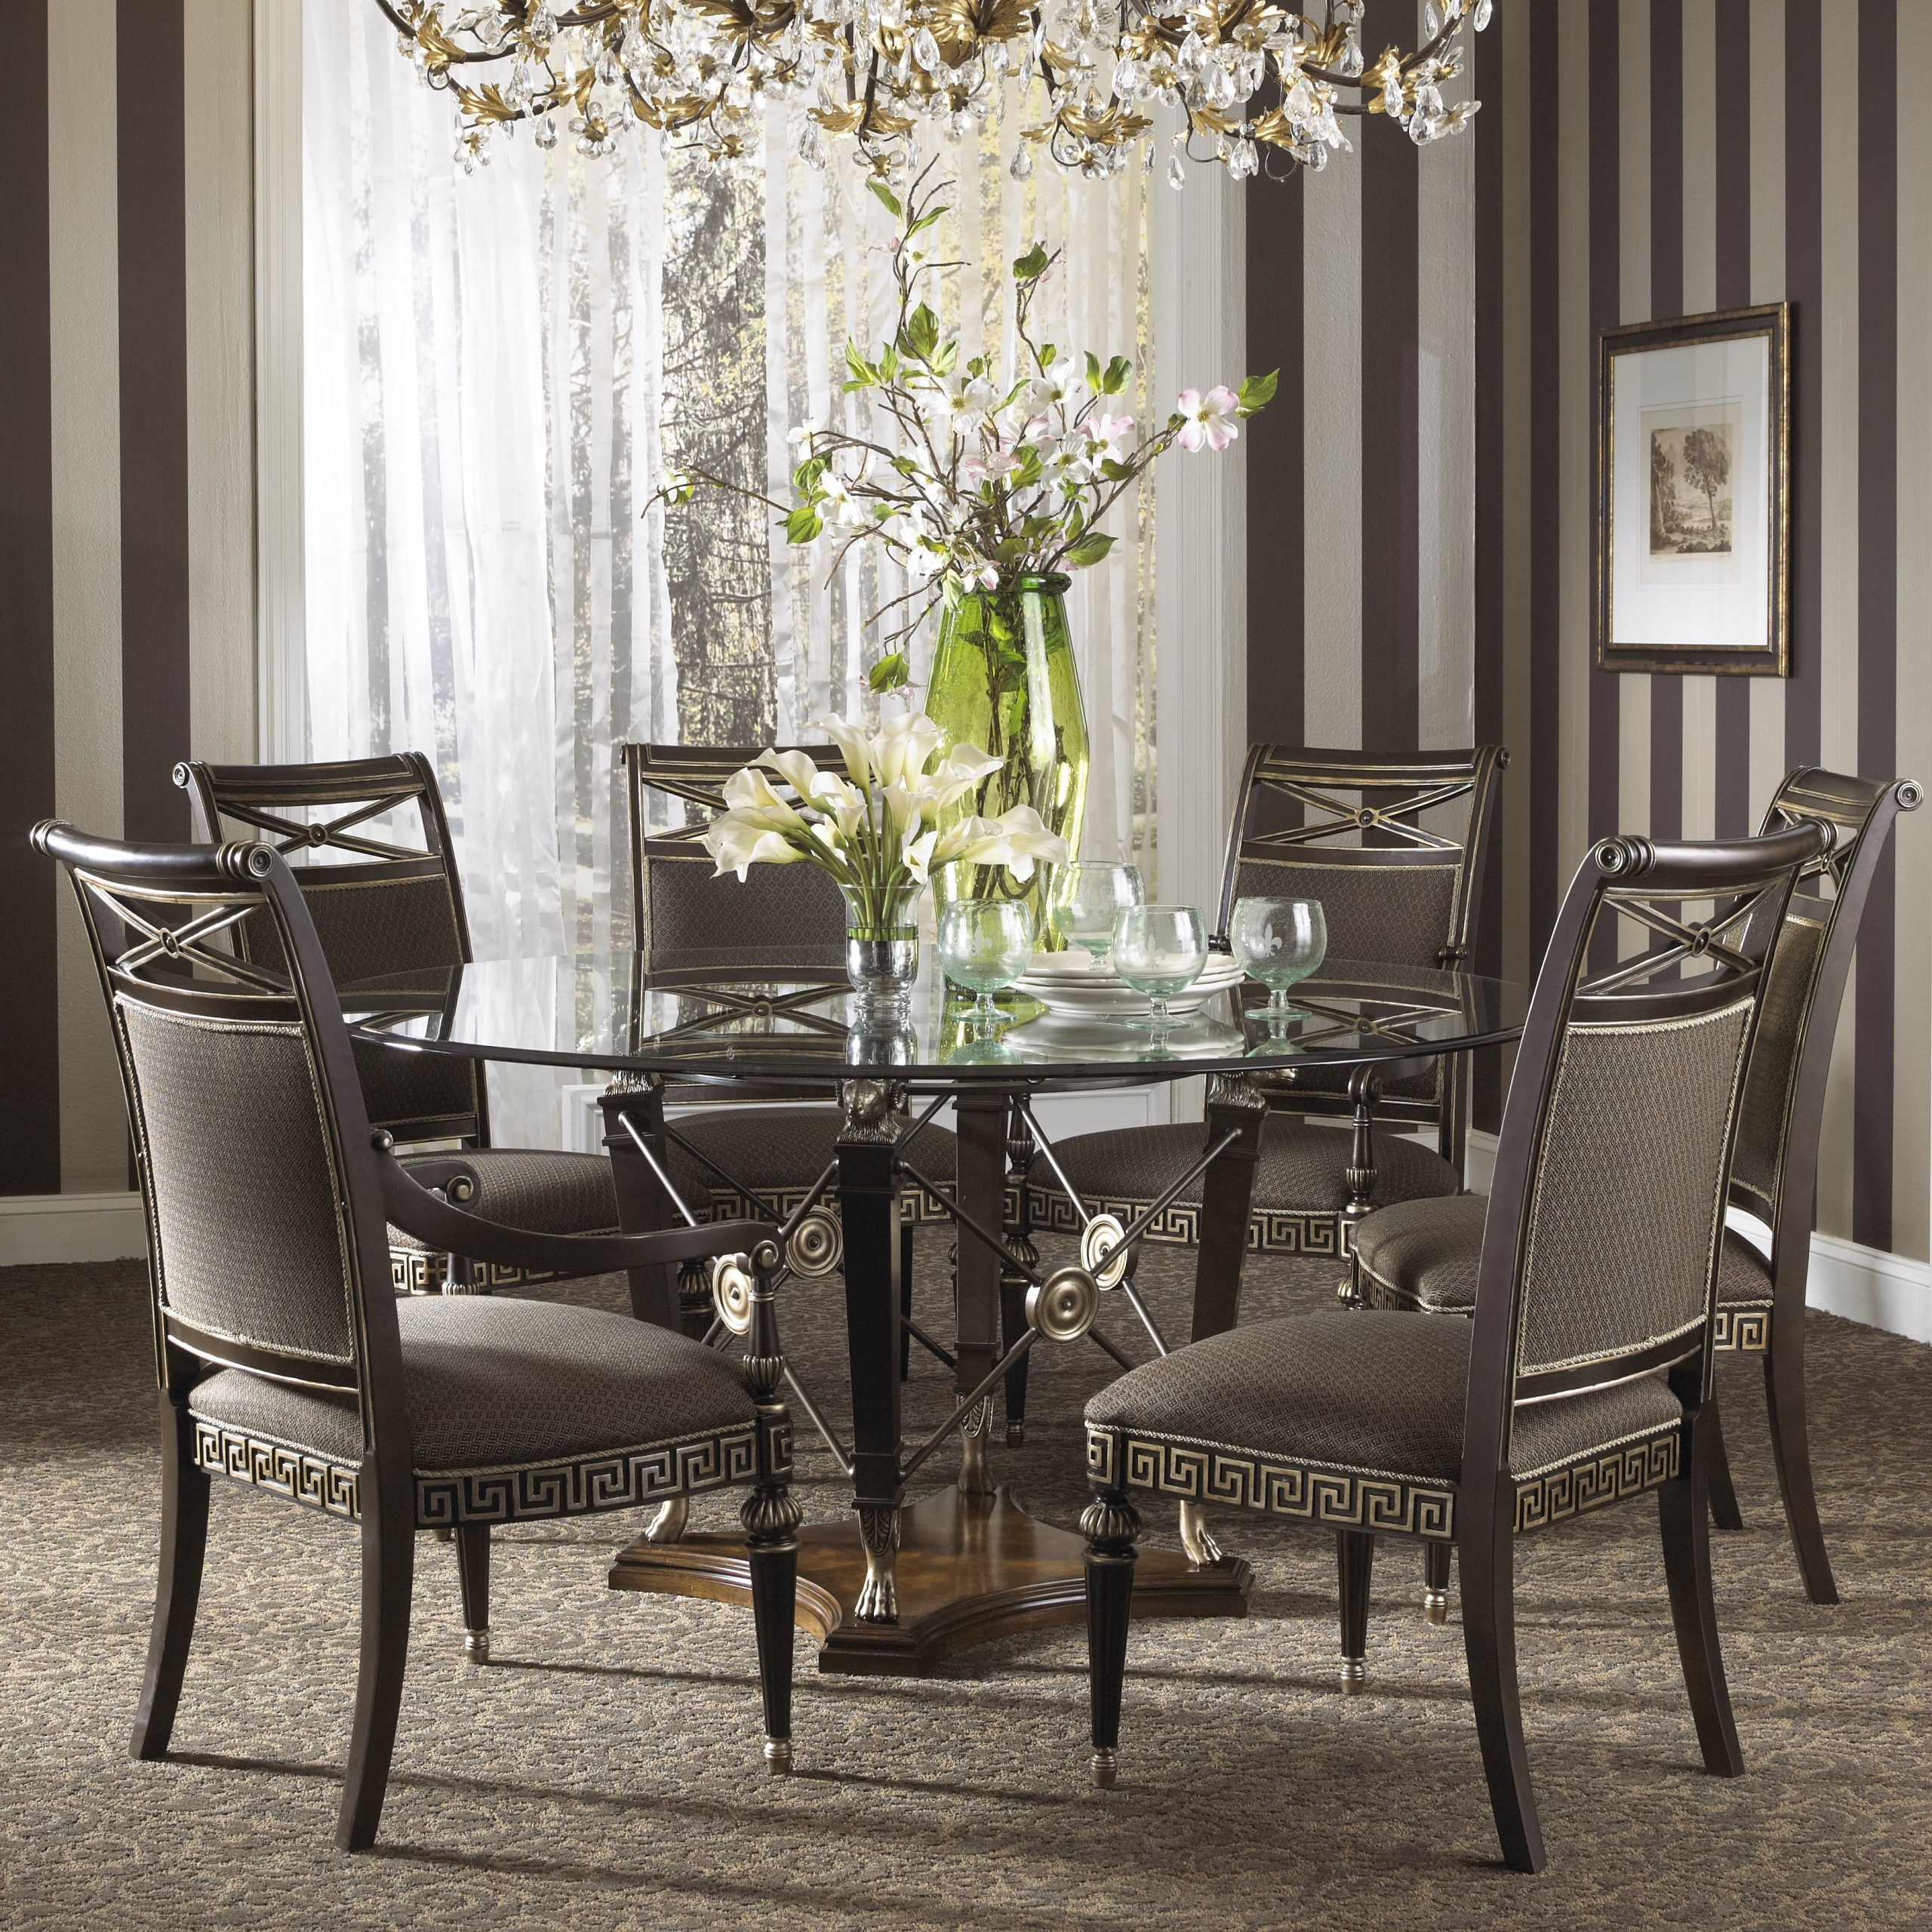 Well Liked Elegant Large Round Glass Dining Table And Chair Clearance Within Elegance Large Round Dining Tables (View 30 of 30)